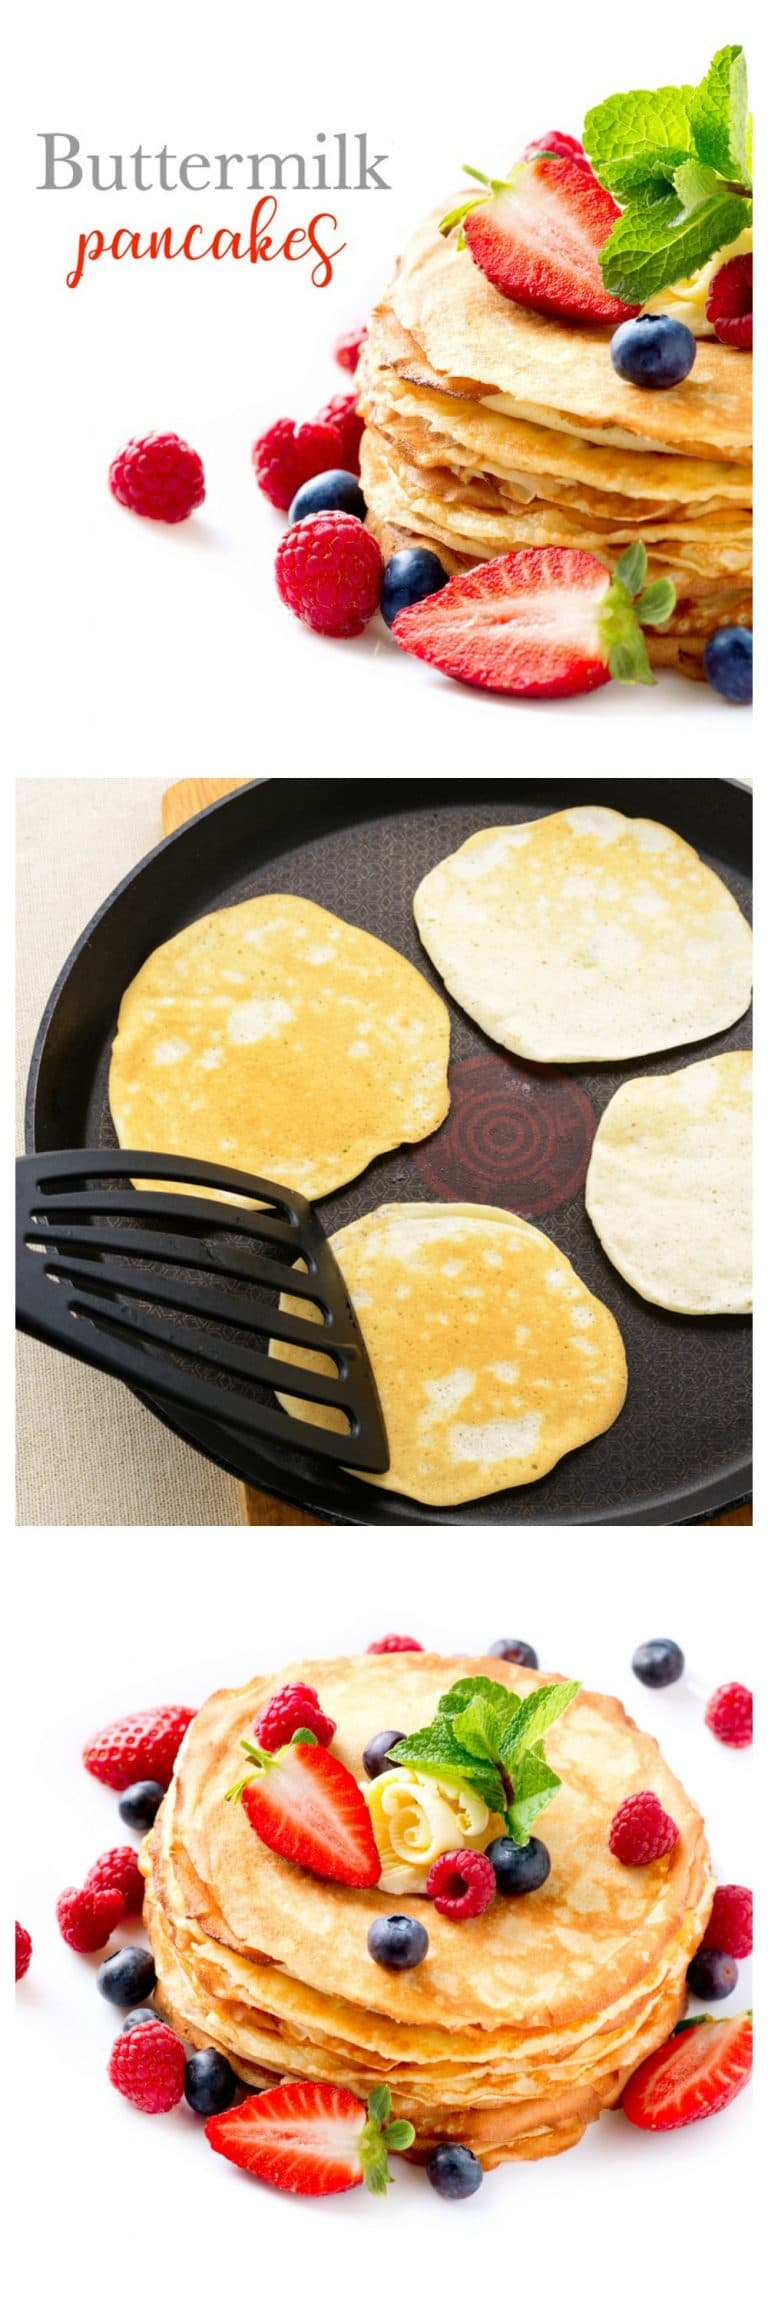 Make the perfect buttermilk pancakes with this delicious and easy recipe in under 15 minutes!